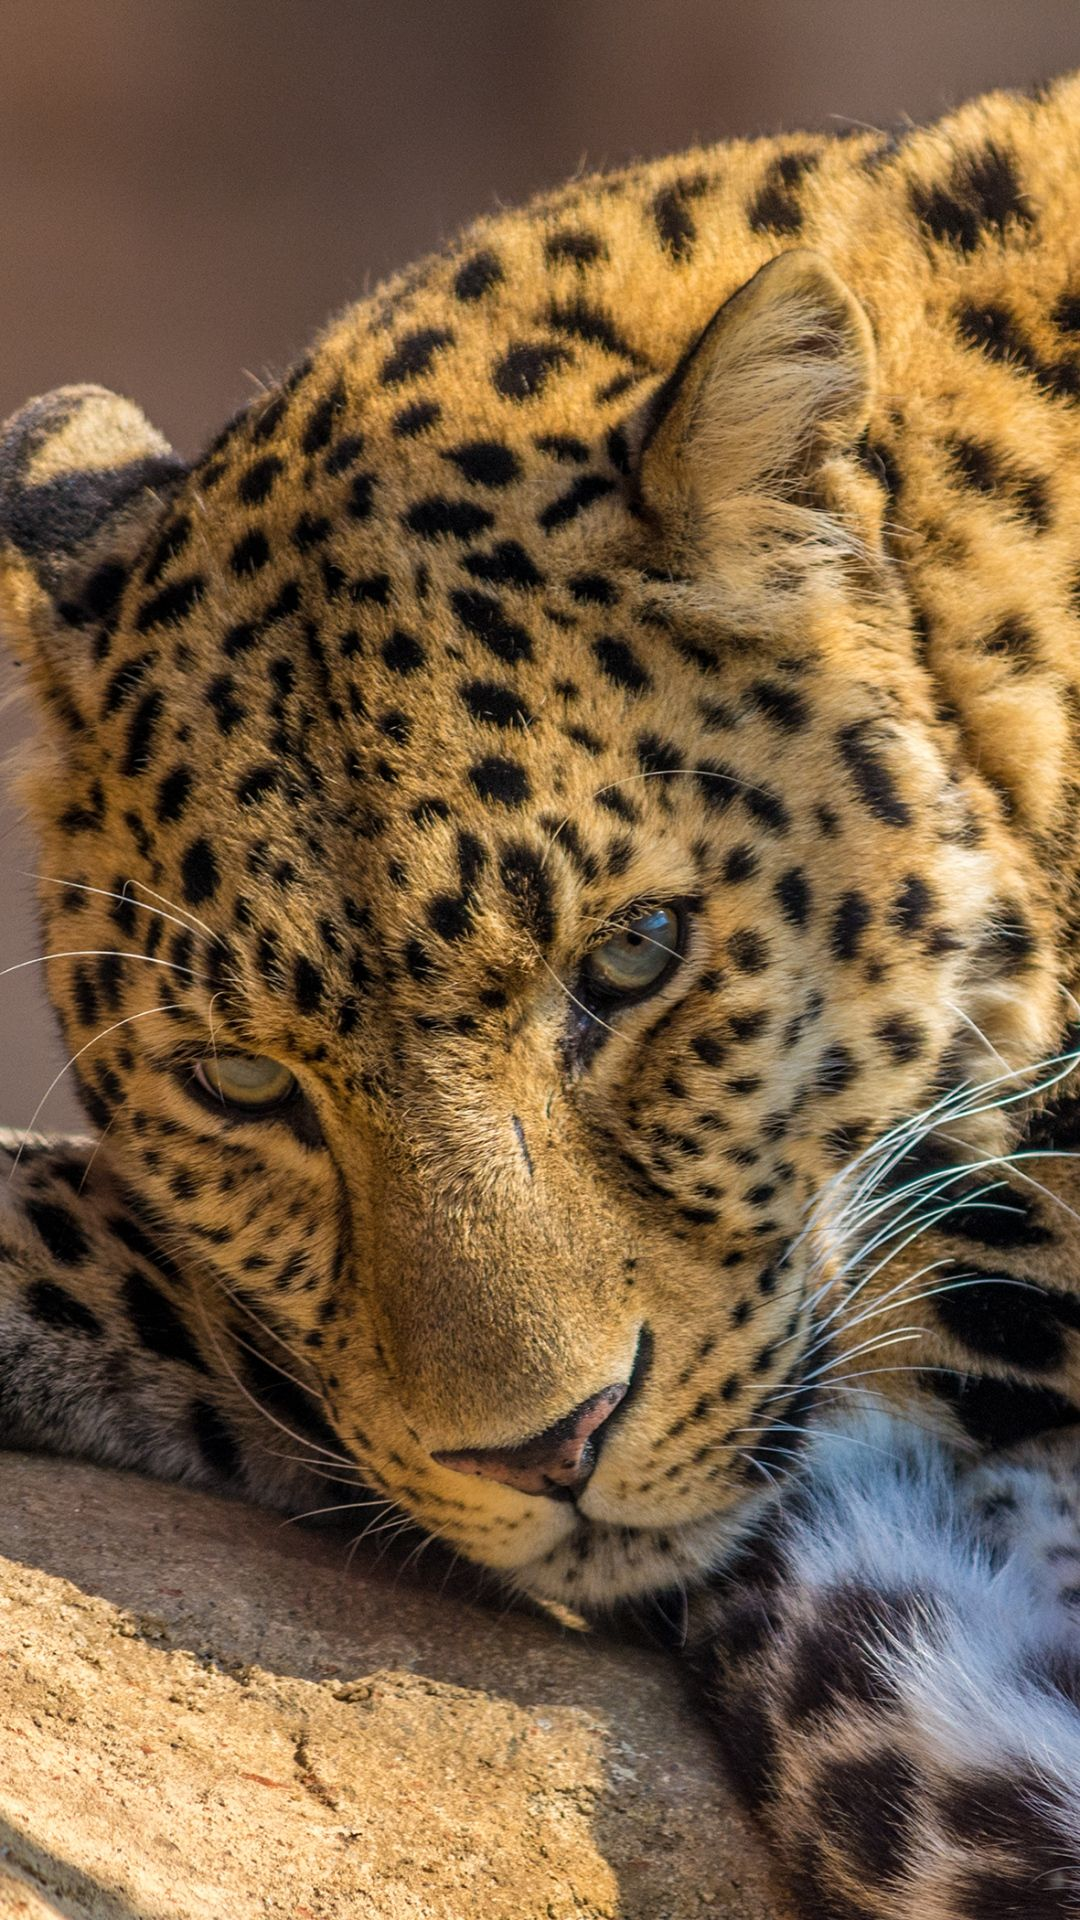 1080x1920 Wallpaper Leopard Predator Lying Look Animals Animal Photography Dogs Leopard Pictures